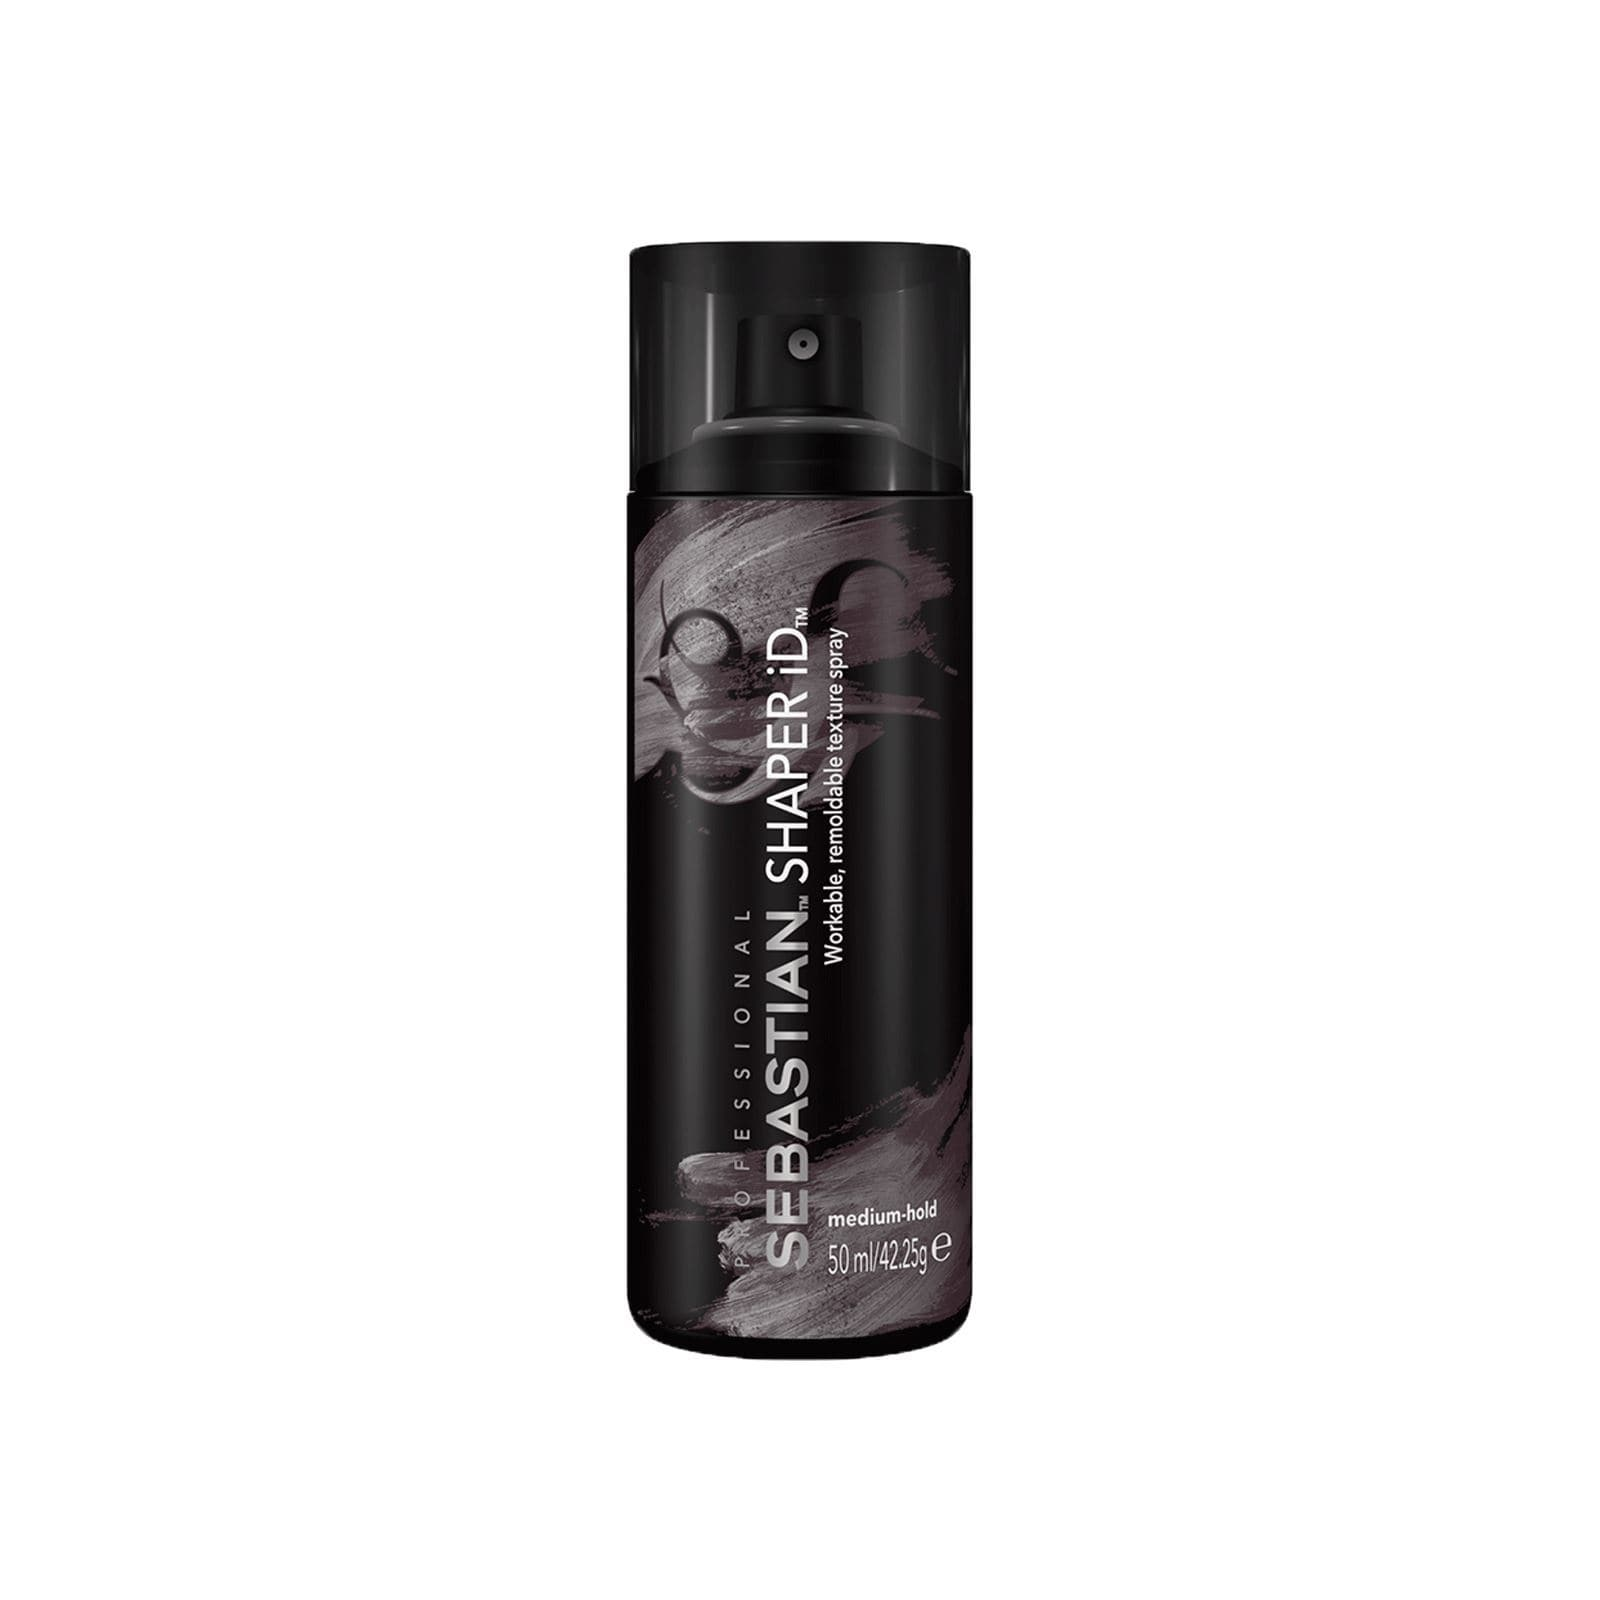 Sebastian Drench Gift Pack with FREE Shaper iD and Dark Oil - SH Salons